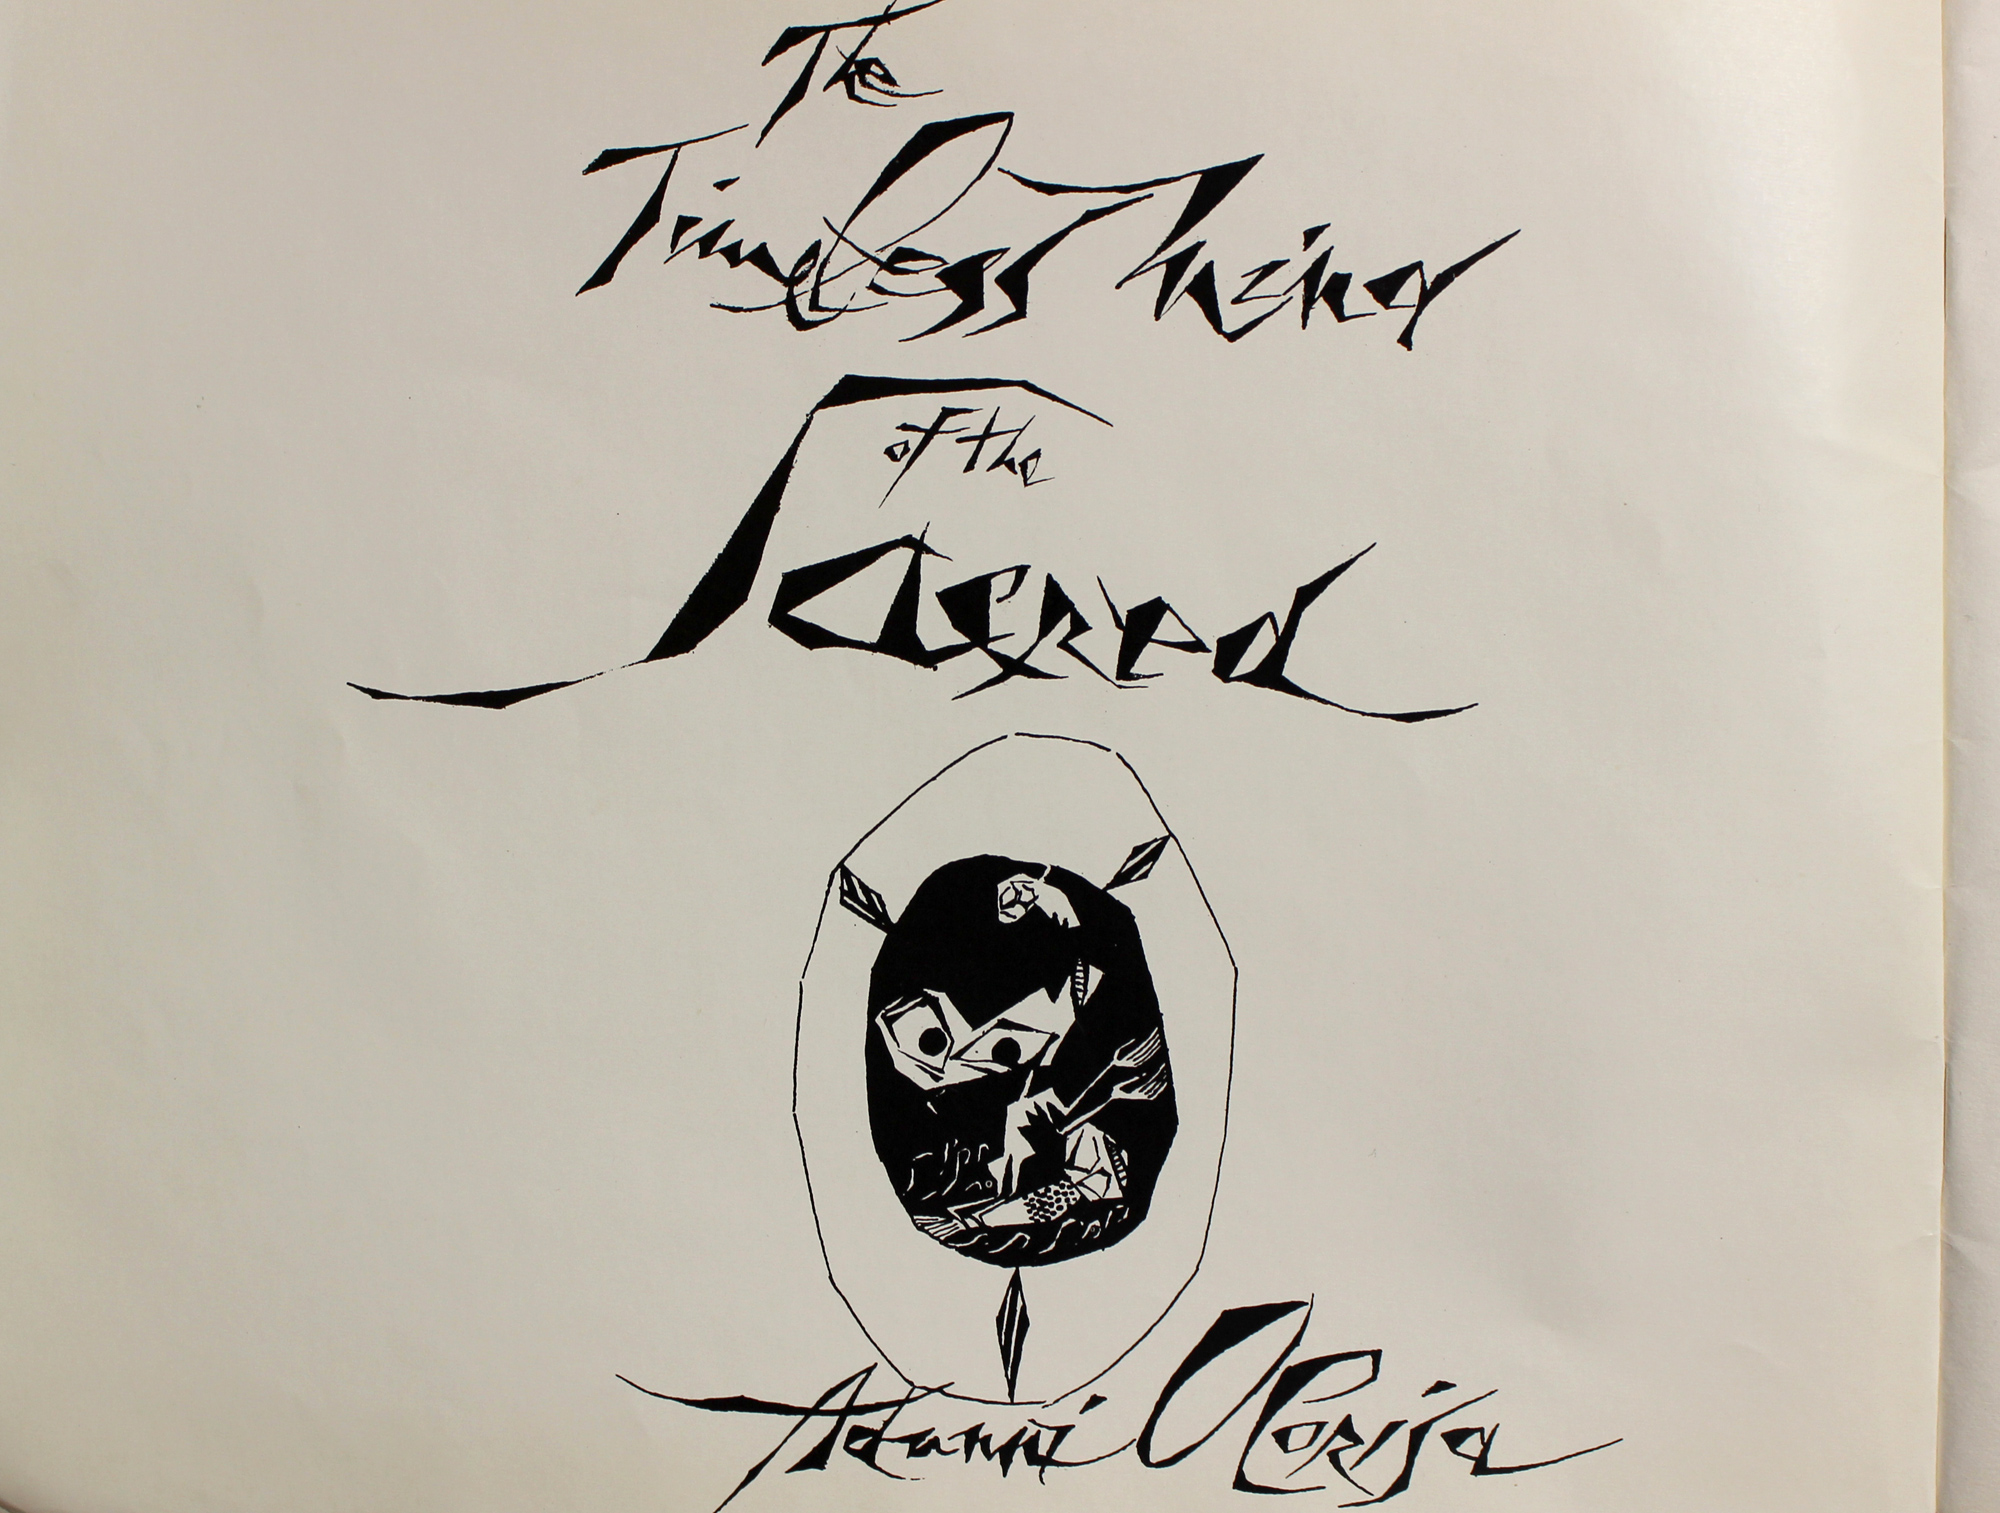 The book title as drawn by Susanne Wenger.